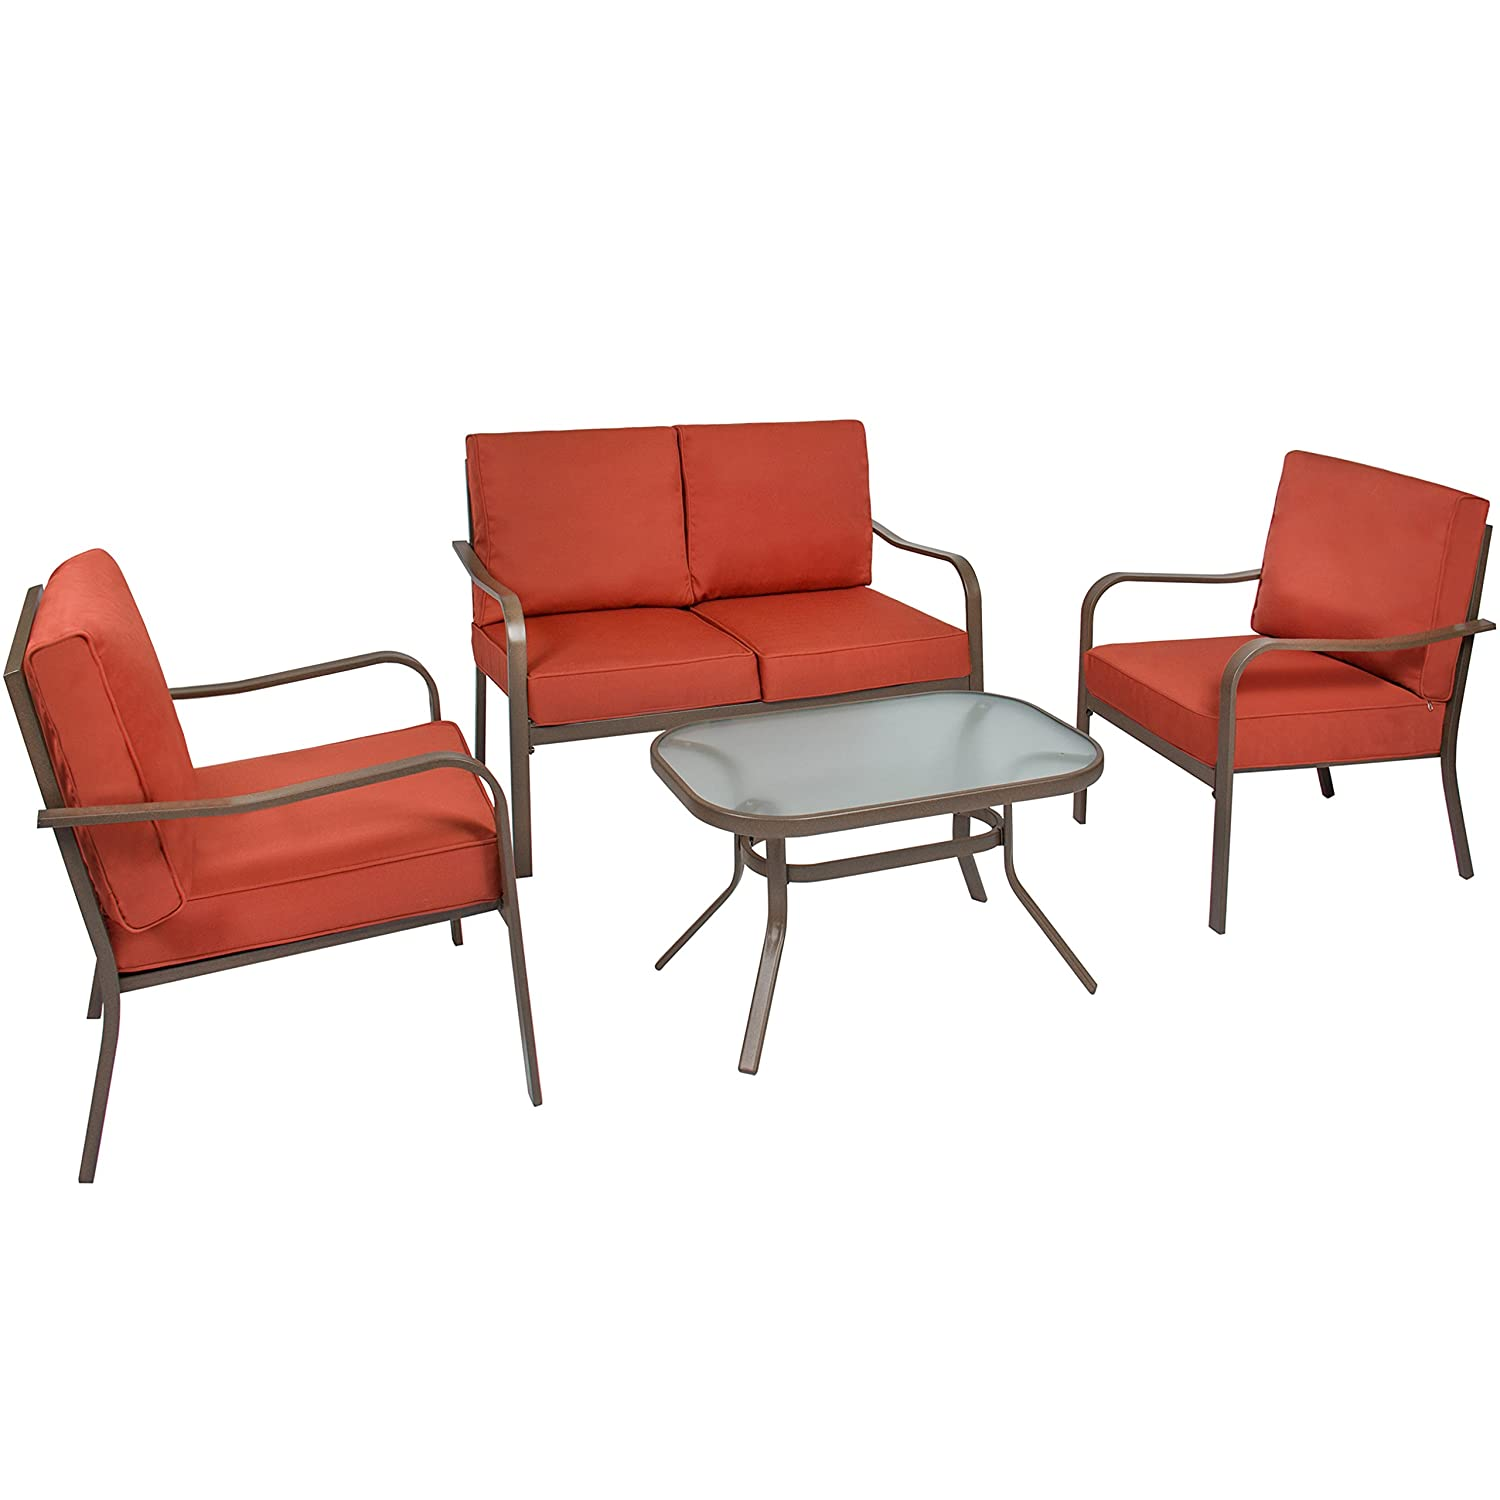 Best Choice Products 4-Piece Cushioned Metal Conversation Set with 2 Chairs and Glass Top Coffee Table, Red